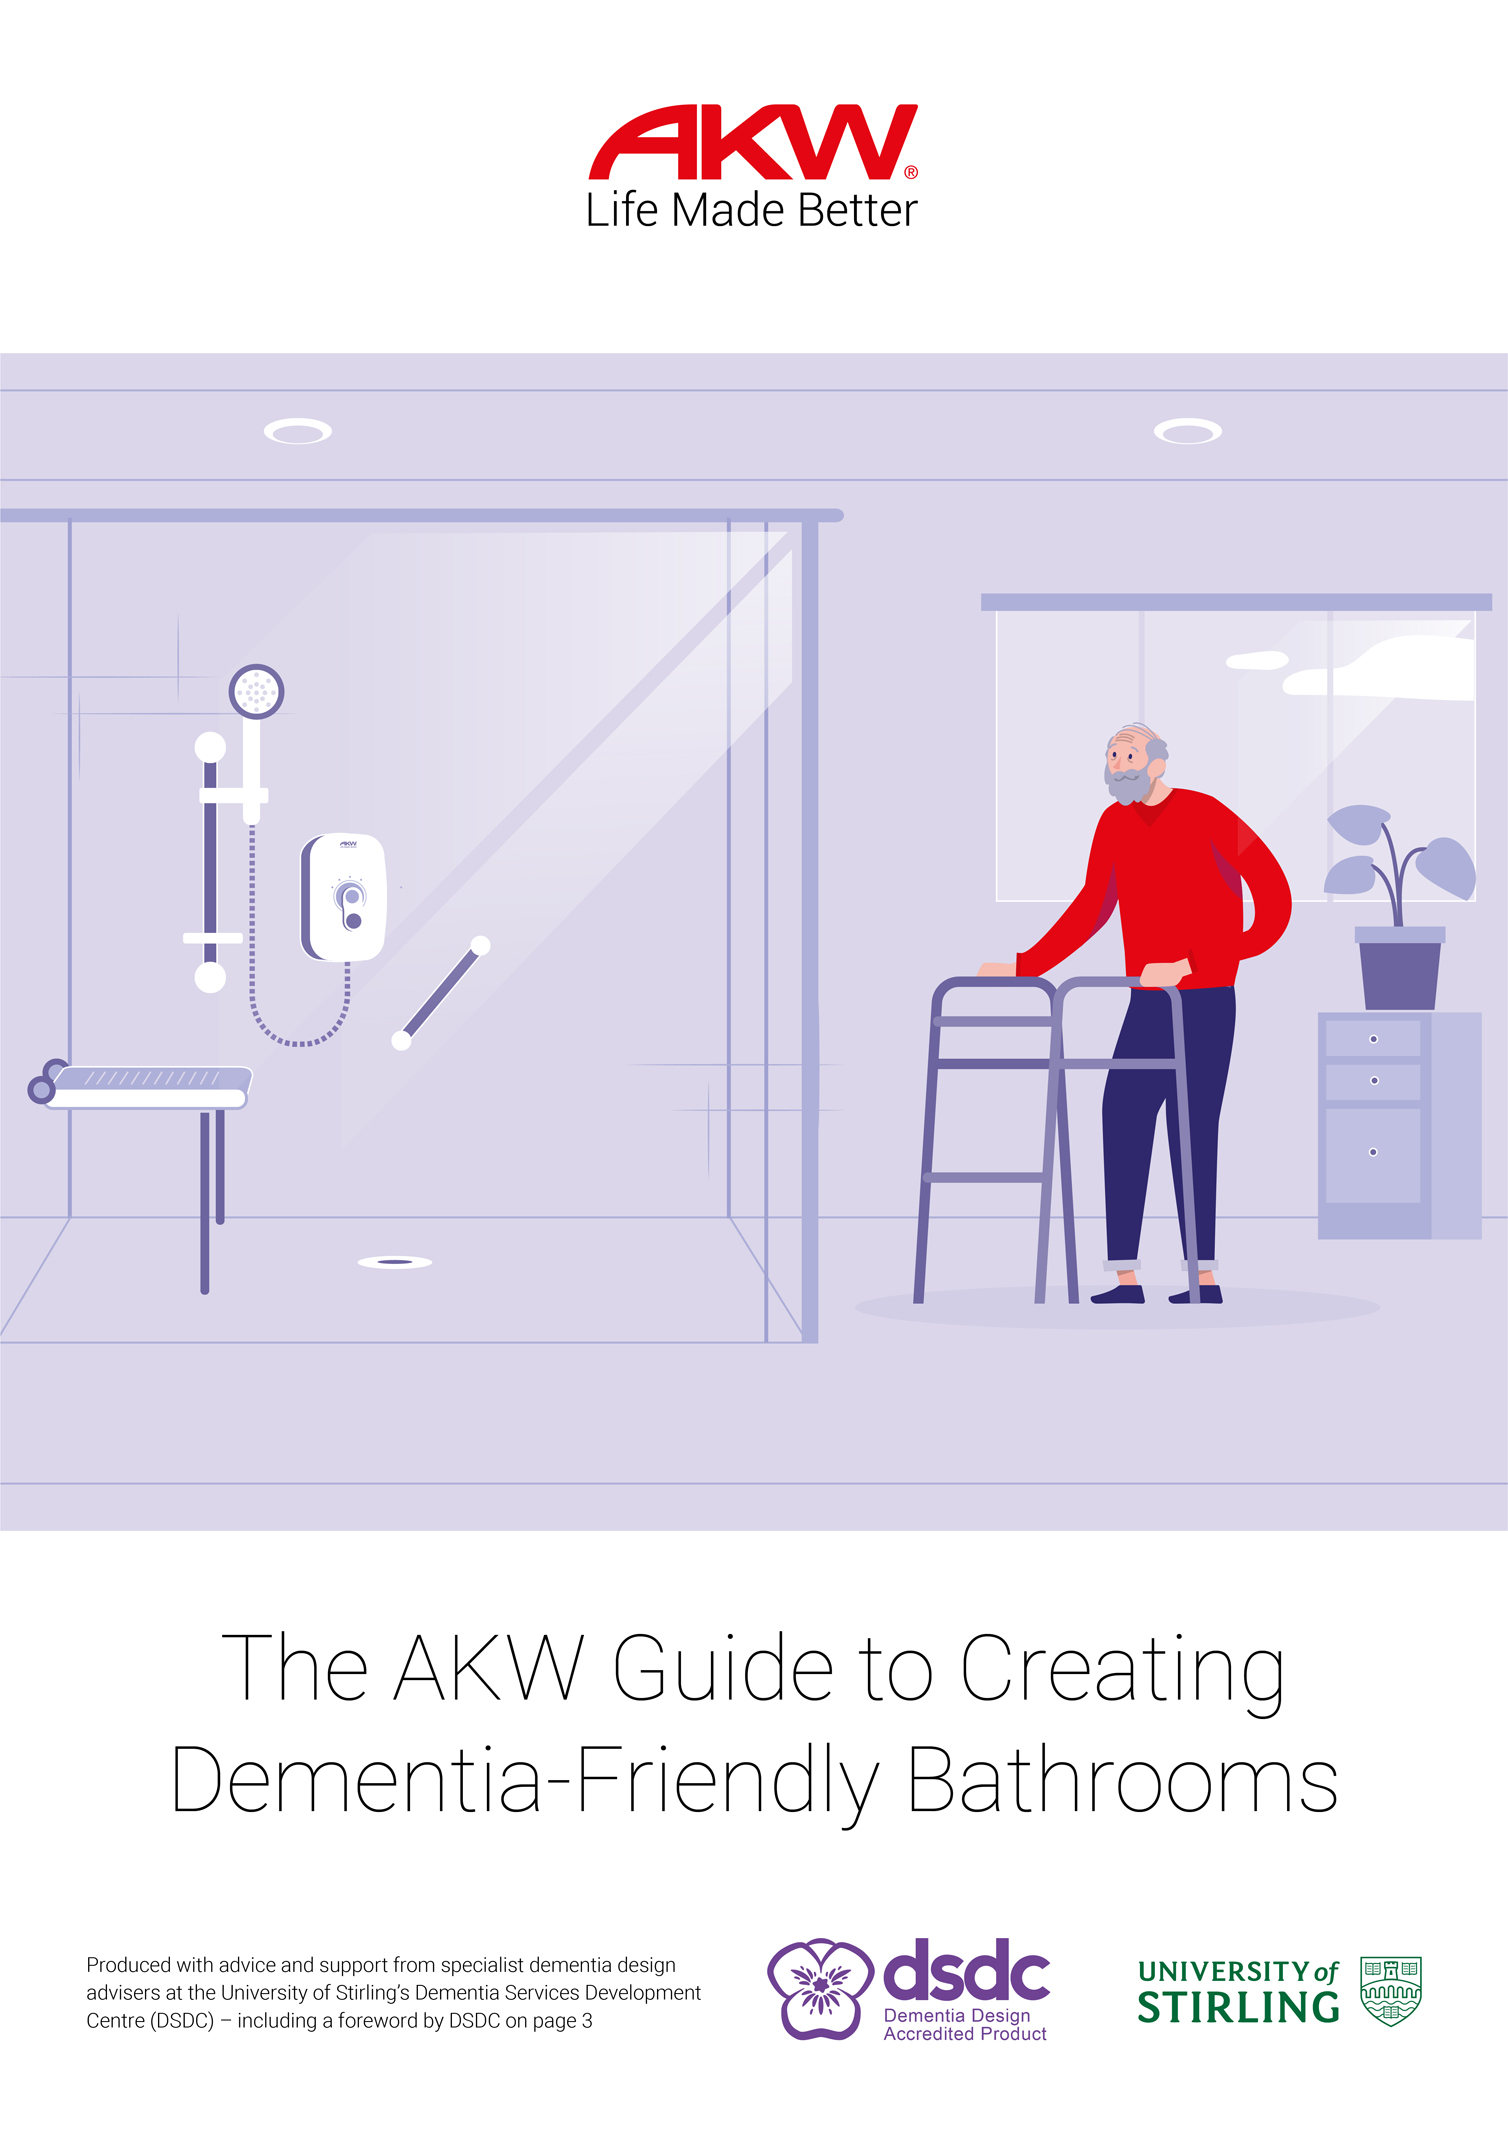 Specialist dementia bathroom design guide launched by AKW